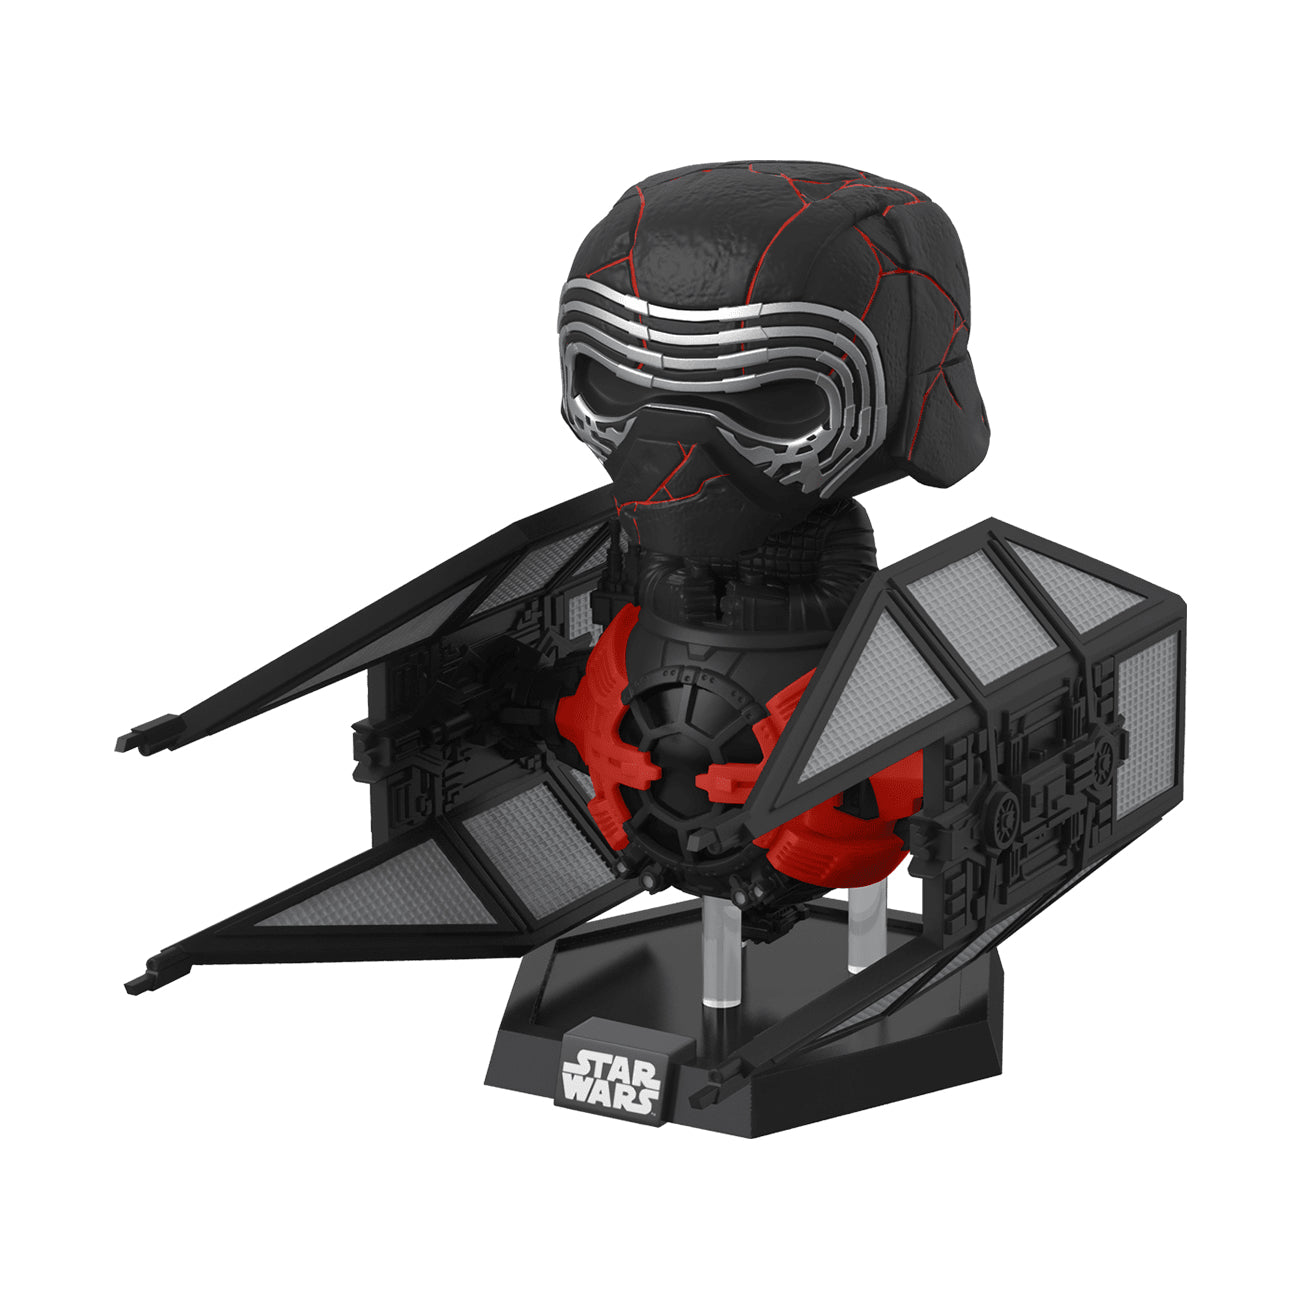 Star Wars The Rise of Skywalker Supreme Leader Kylo Ren Pop Deluxe